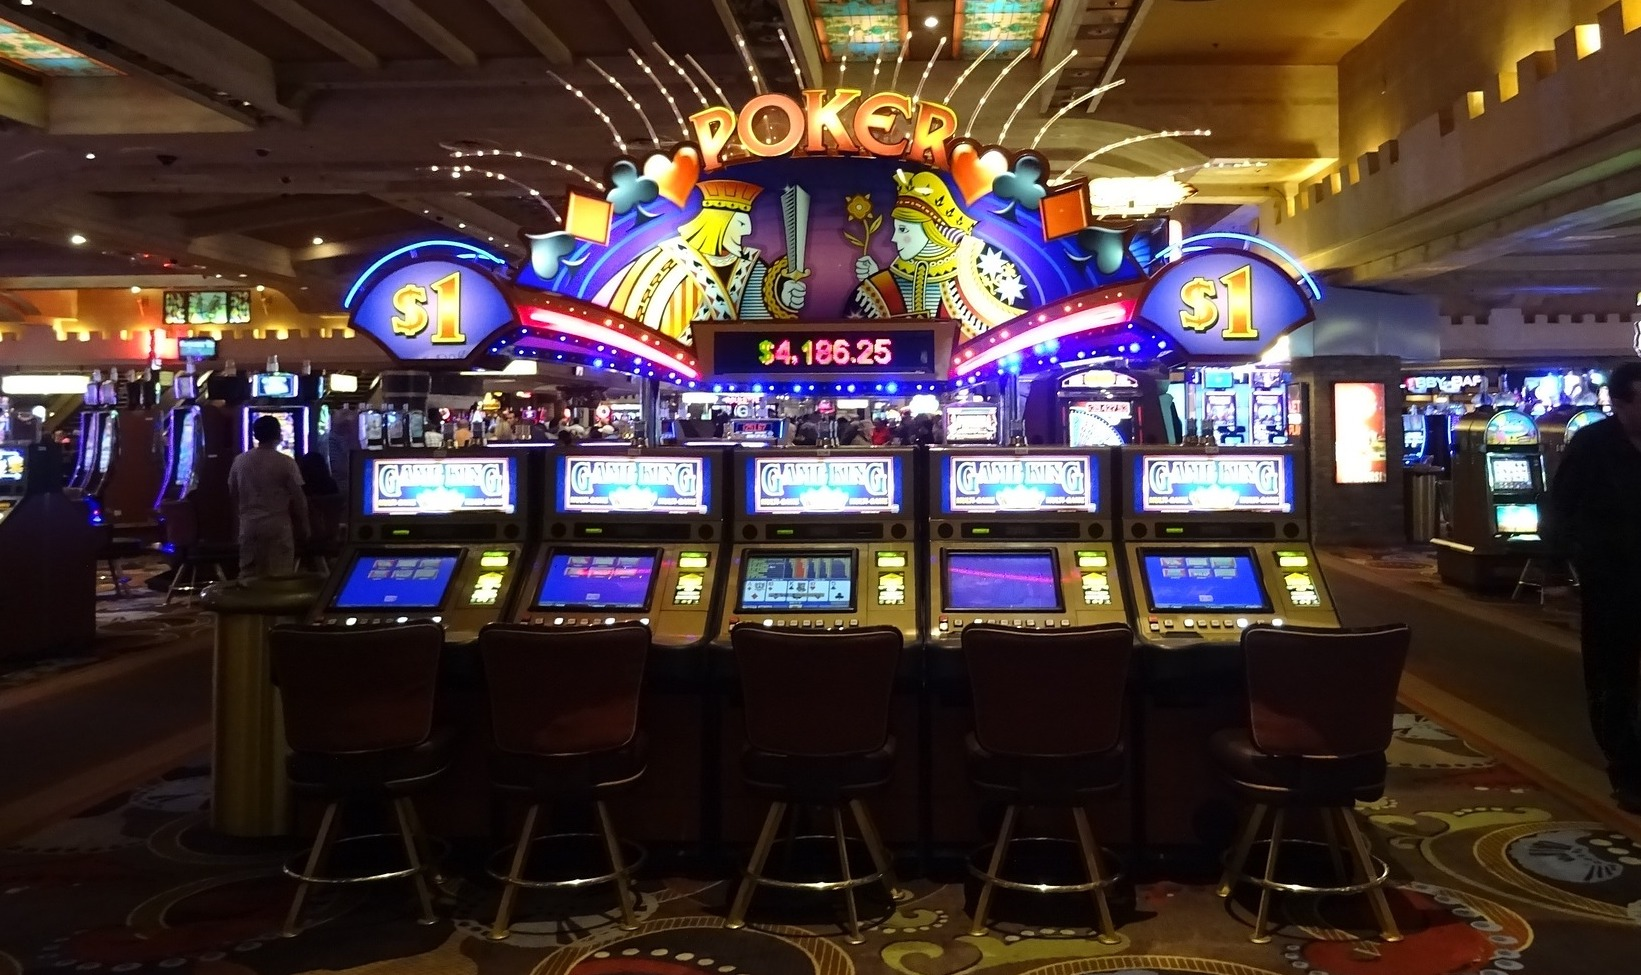 Illinois is poised to become the gambling capital of the Midwest - Wausau  Pilot & Review